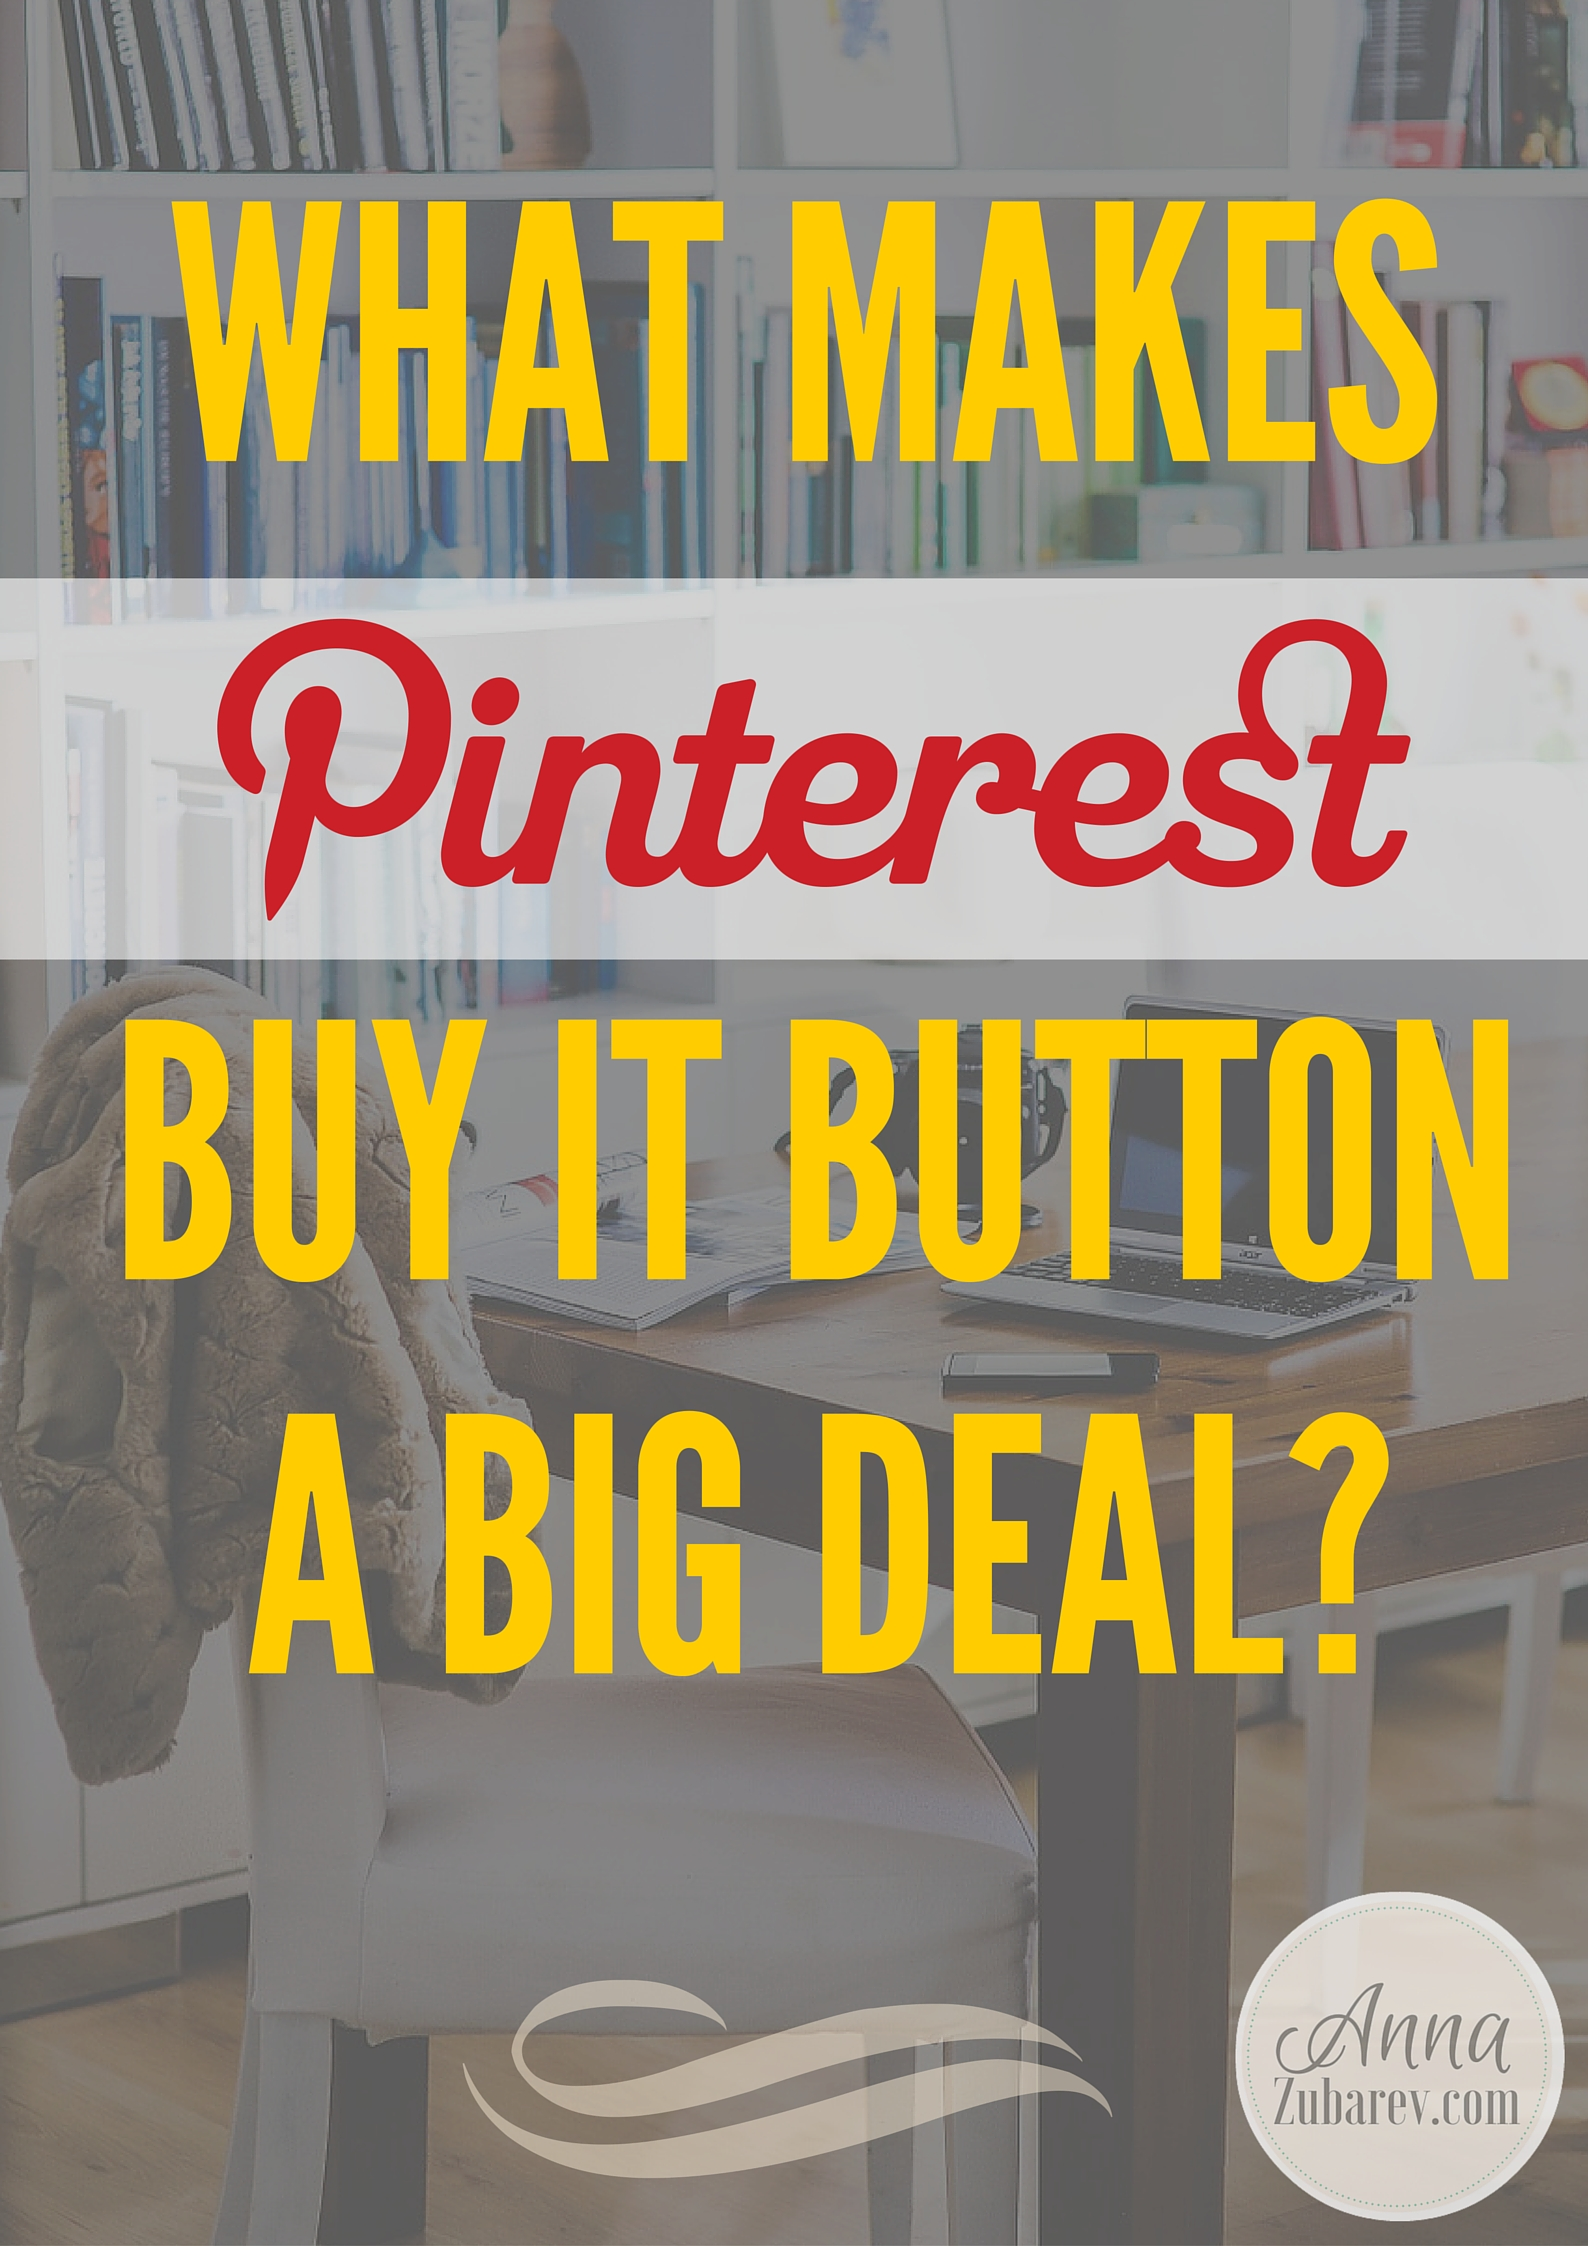 What Makes A Pinterest Buy It Button Big Deal? via @annazubarev